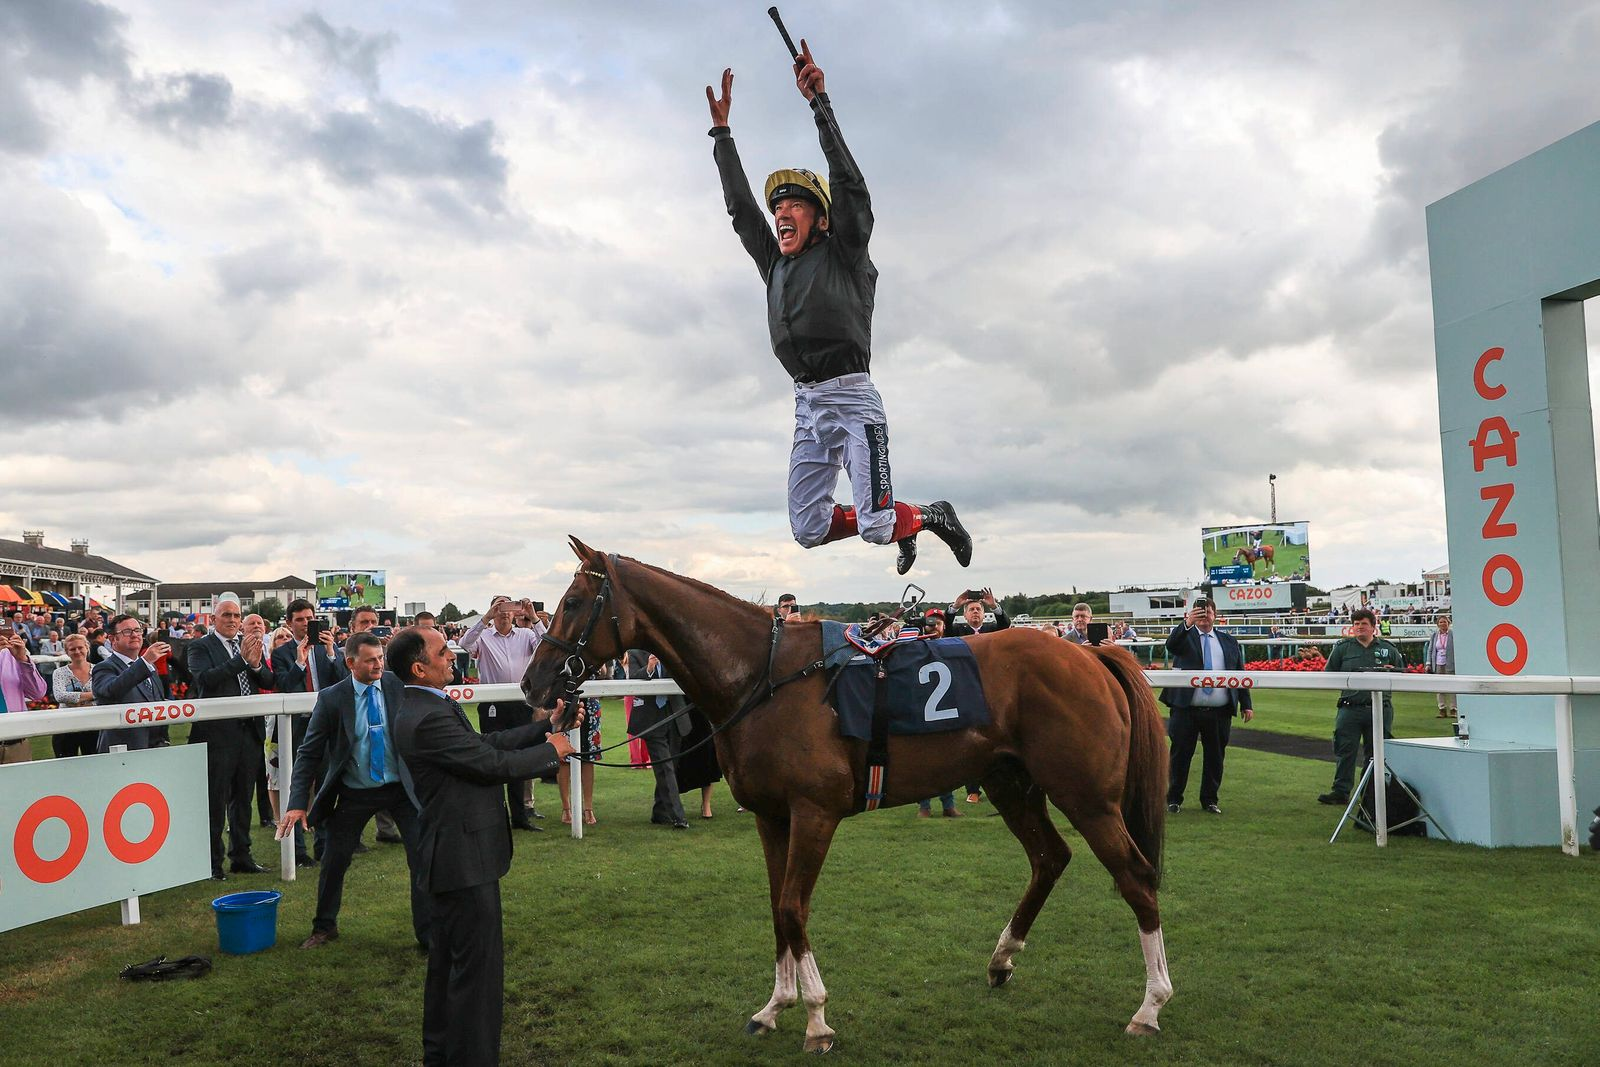 Sport Bilder des Tages St Leger, Doncaster Cup Day 2021 Frankie Dettori celebrates winning the Doncaster Cup Stakes on S